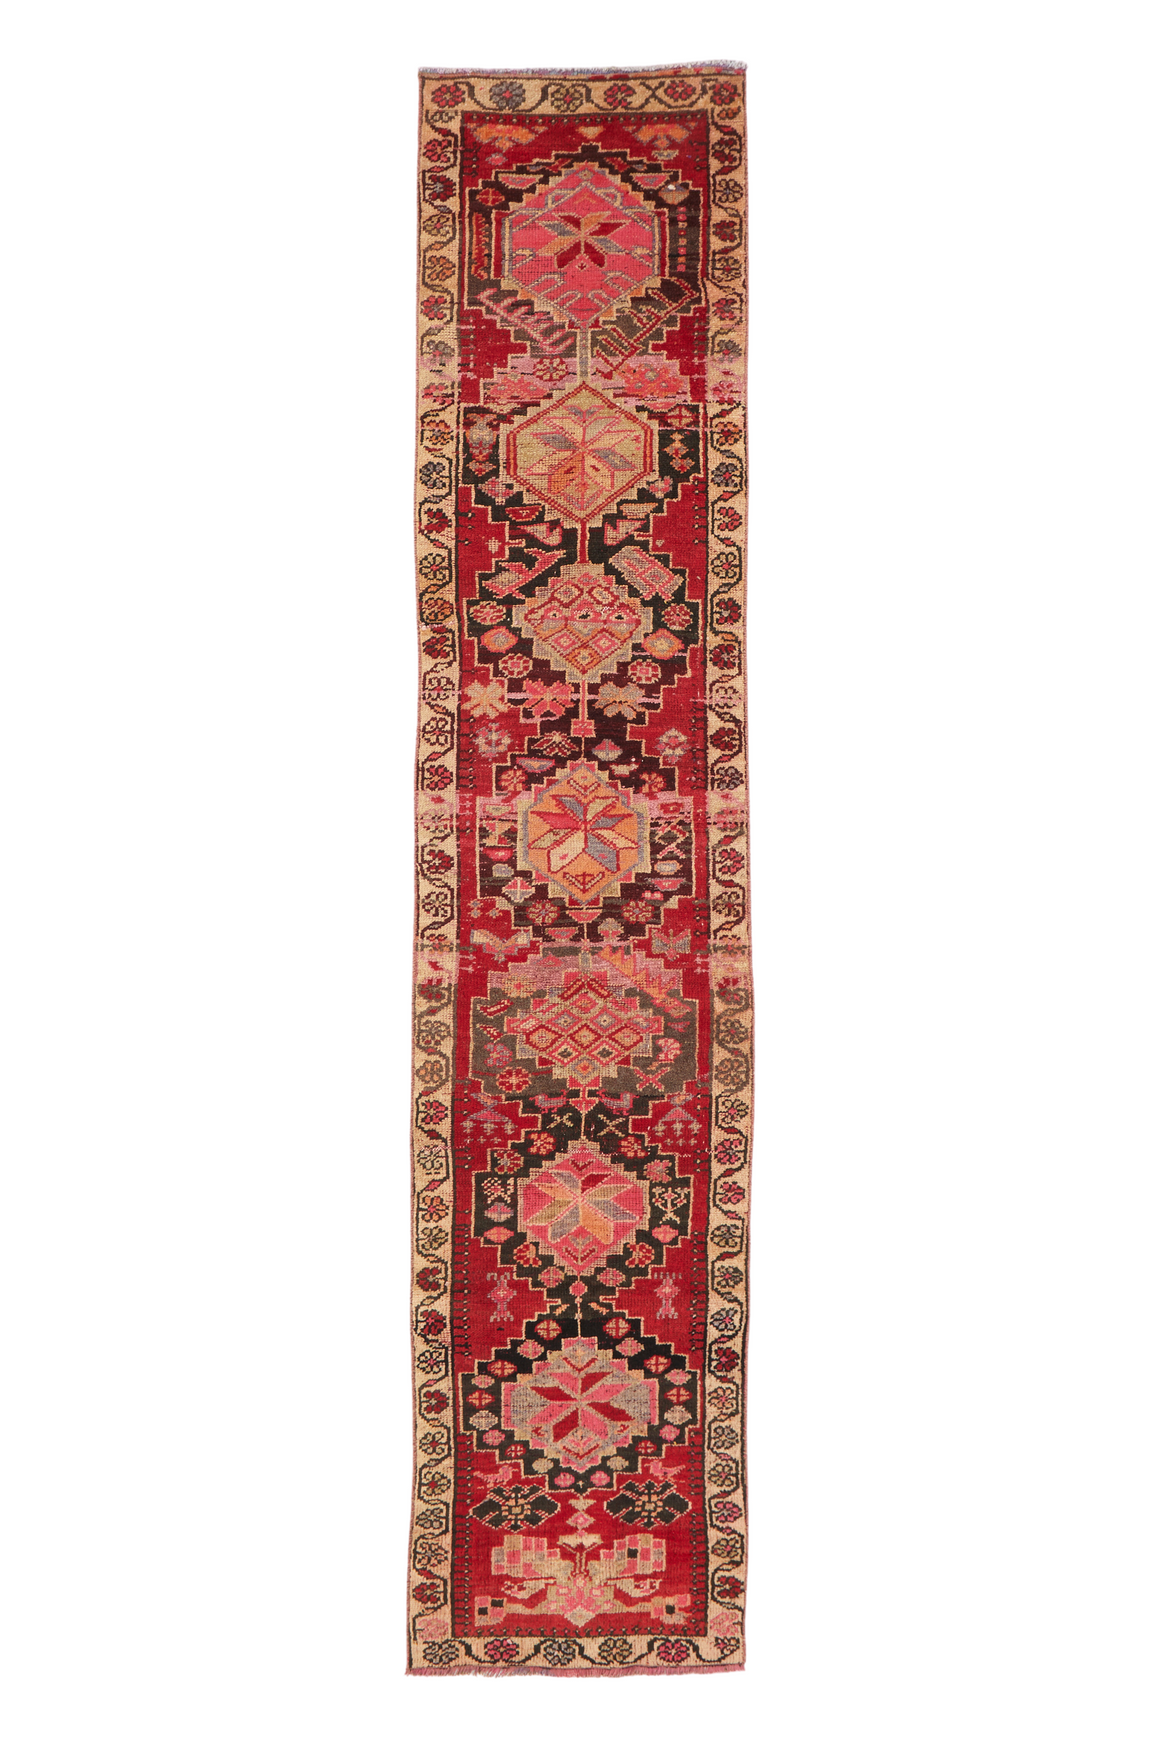 "'Seville' Turkish Vintage Runner Rug - 2'3.5"" x 11'11"""